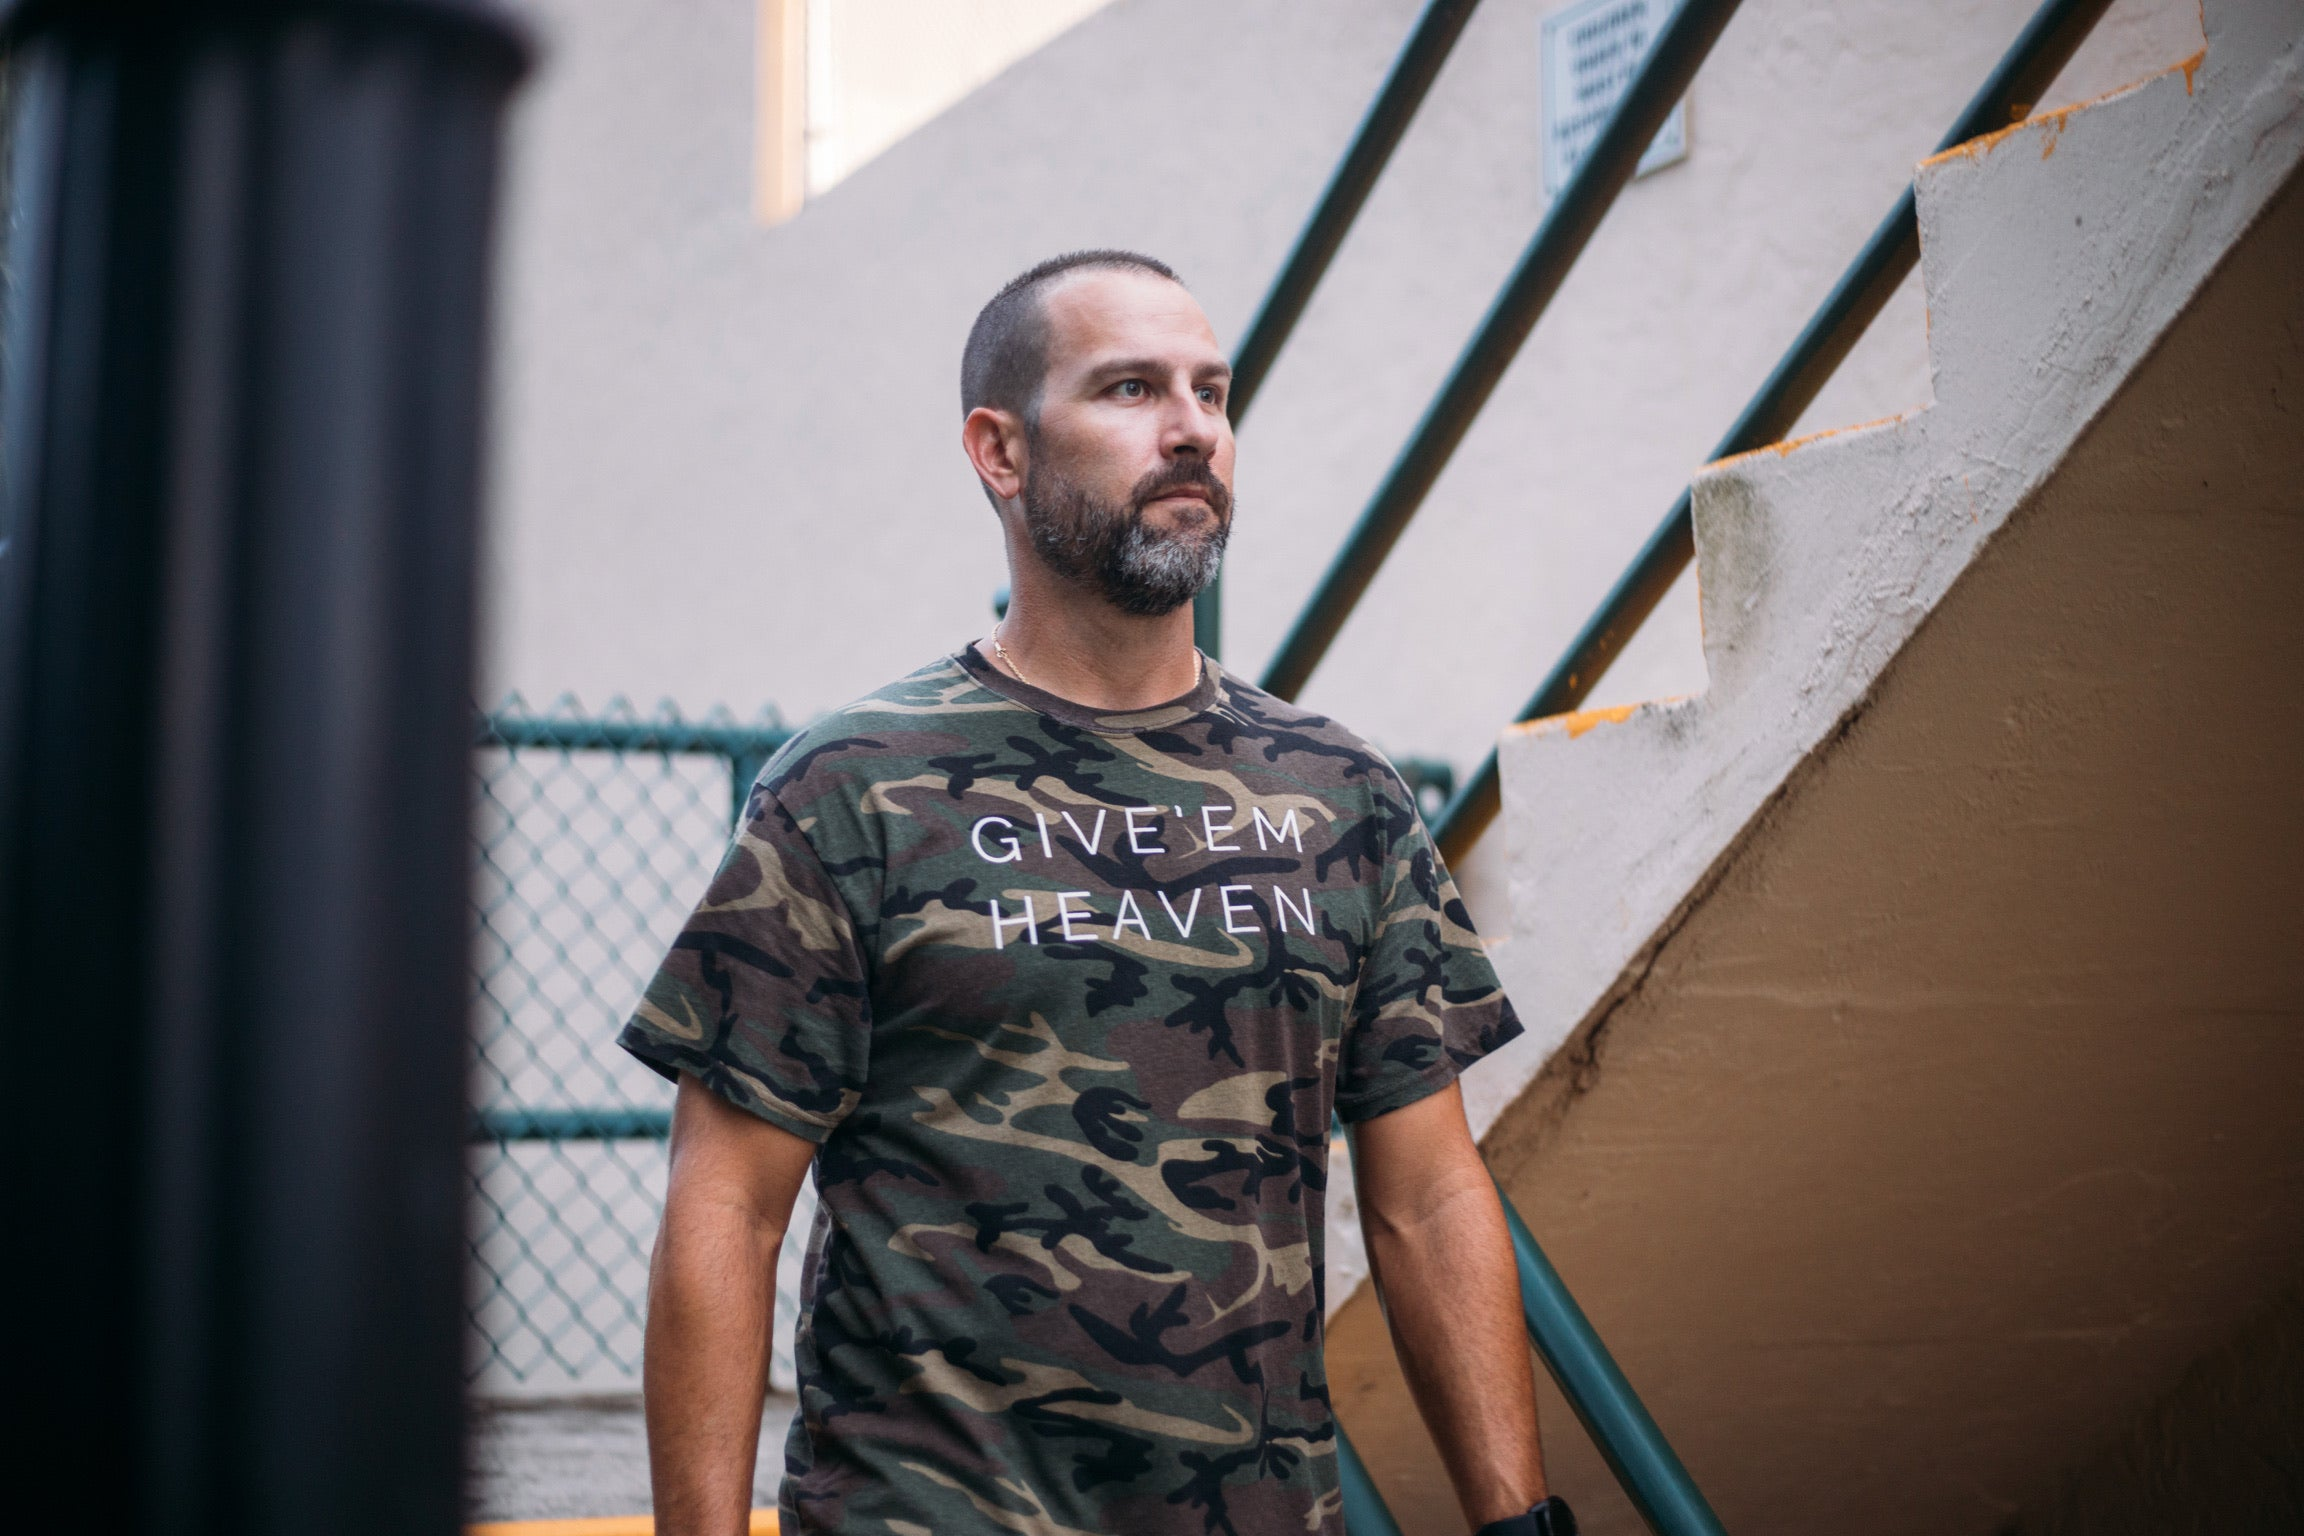 GIVE EM HEAVEN - MEN'S RUGGED CAMO TEE